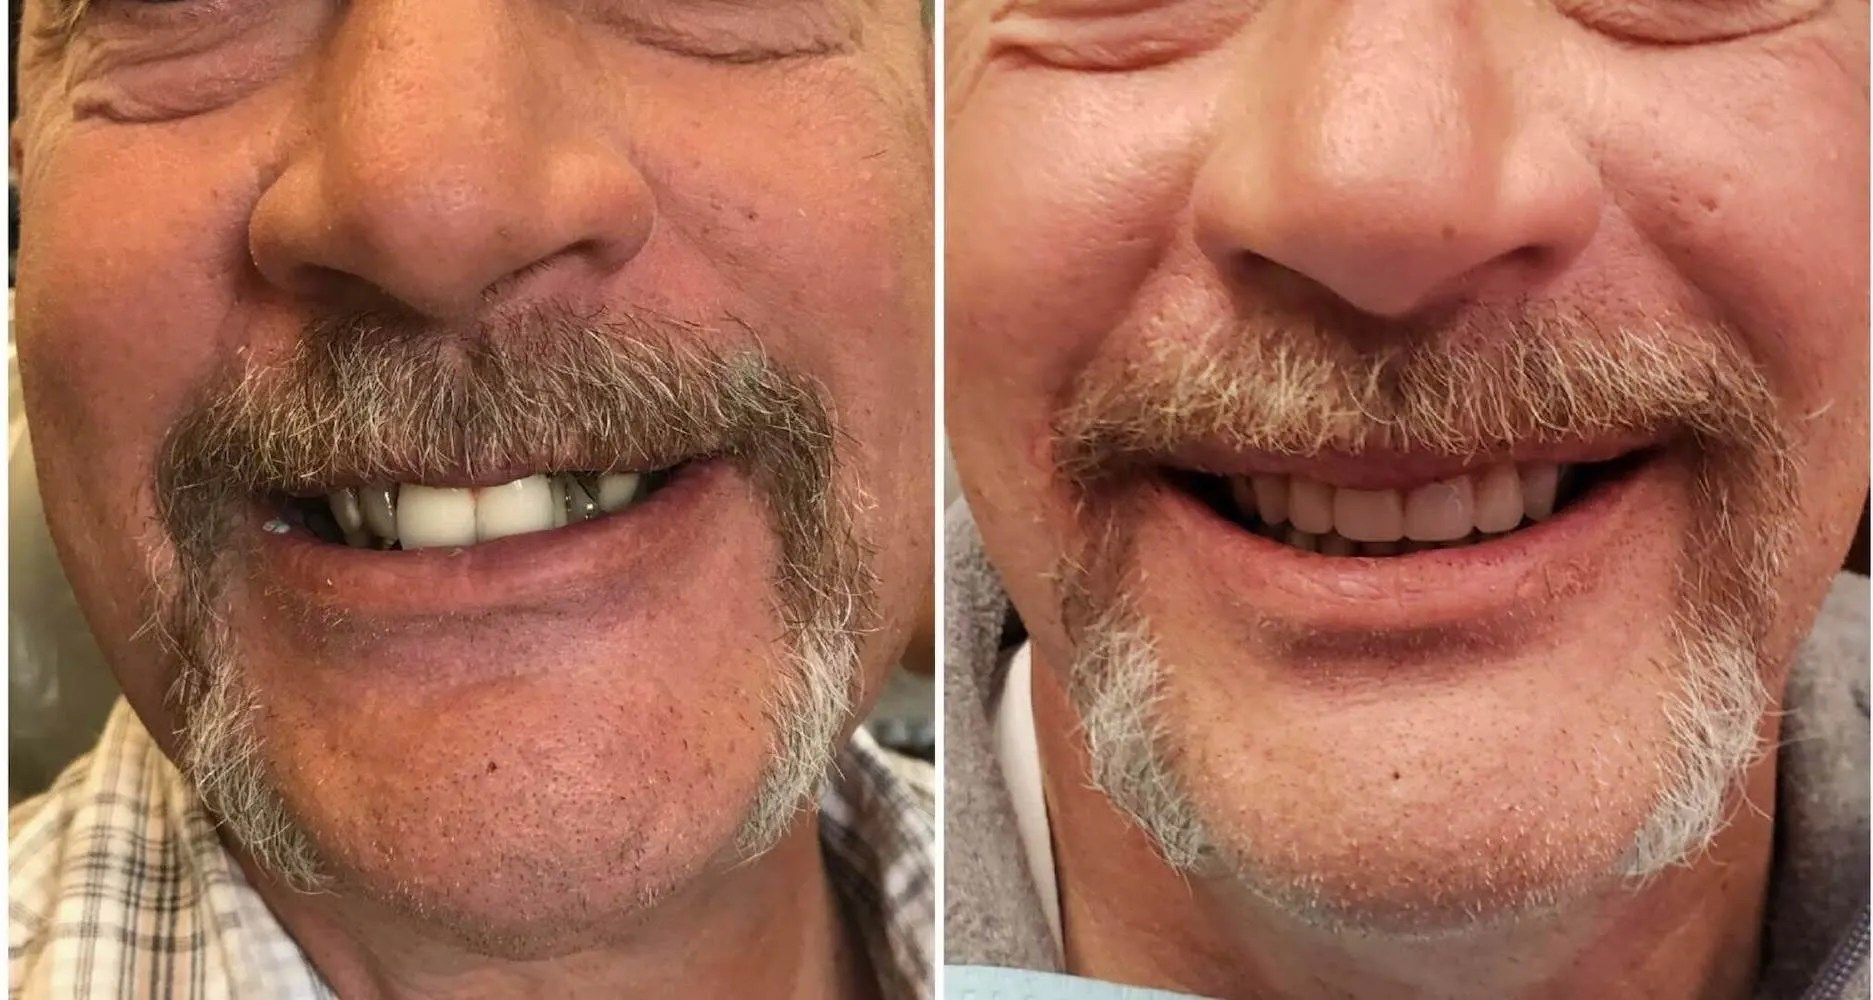 Before-and-after-springville_dentistry-payson-ut-bearded-male-better-smiles copy